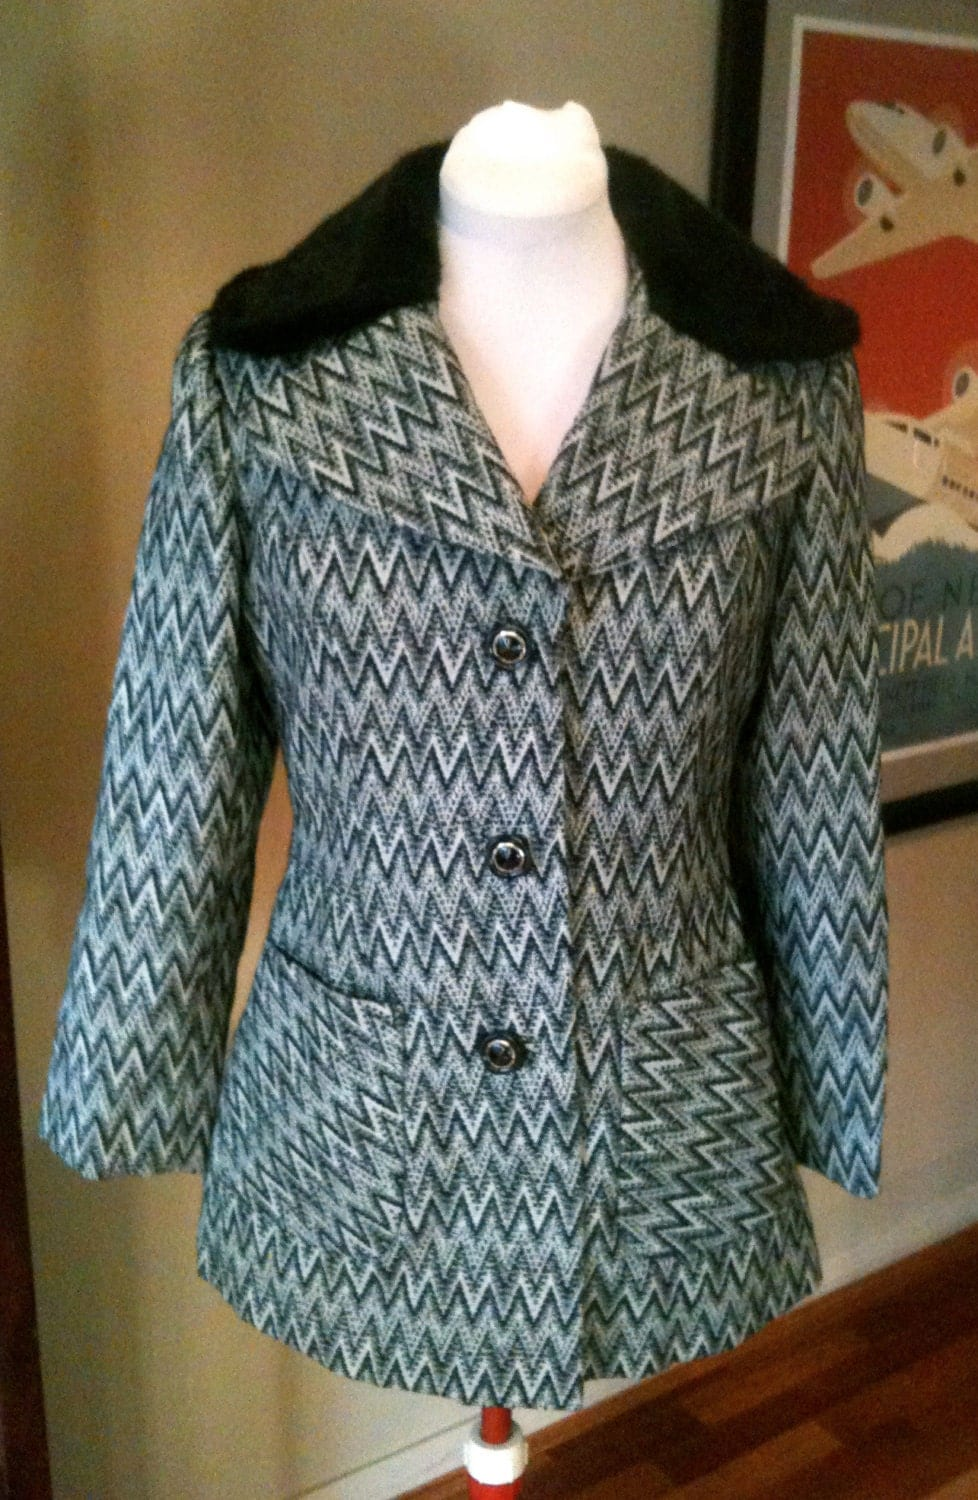 Vintage 1960s Jersey Wool Jacket with Faux Fur Collar - L